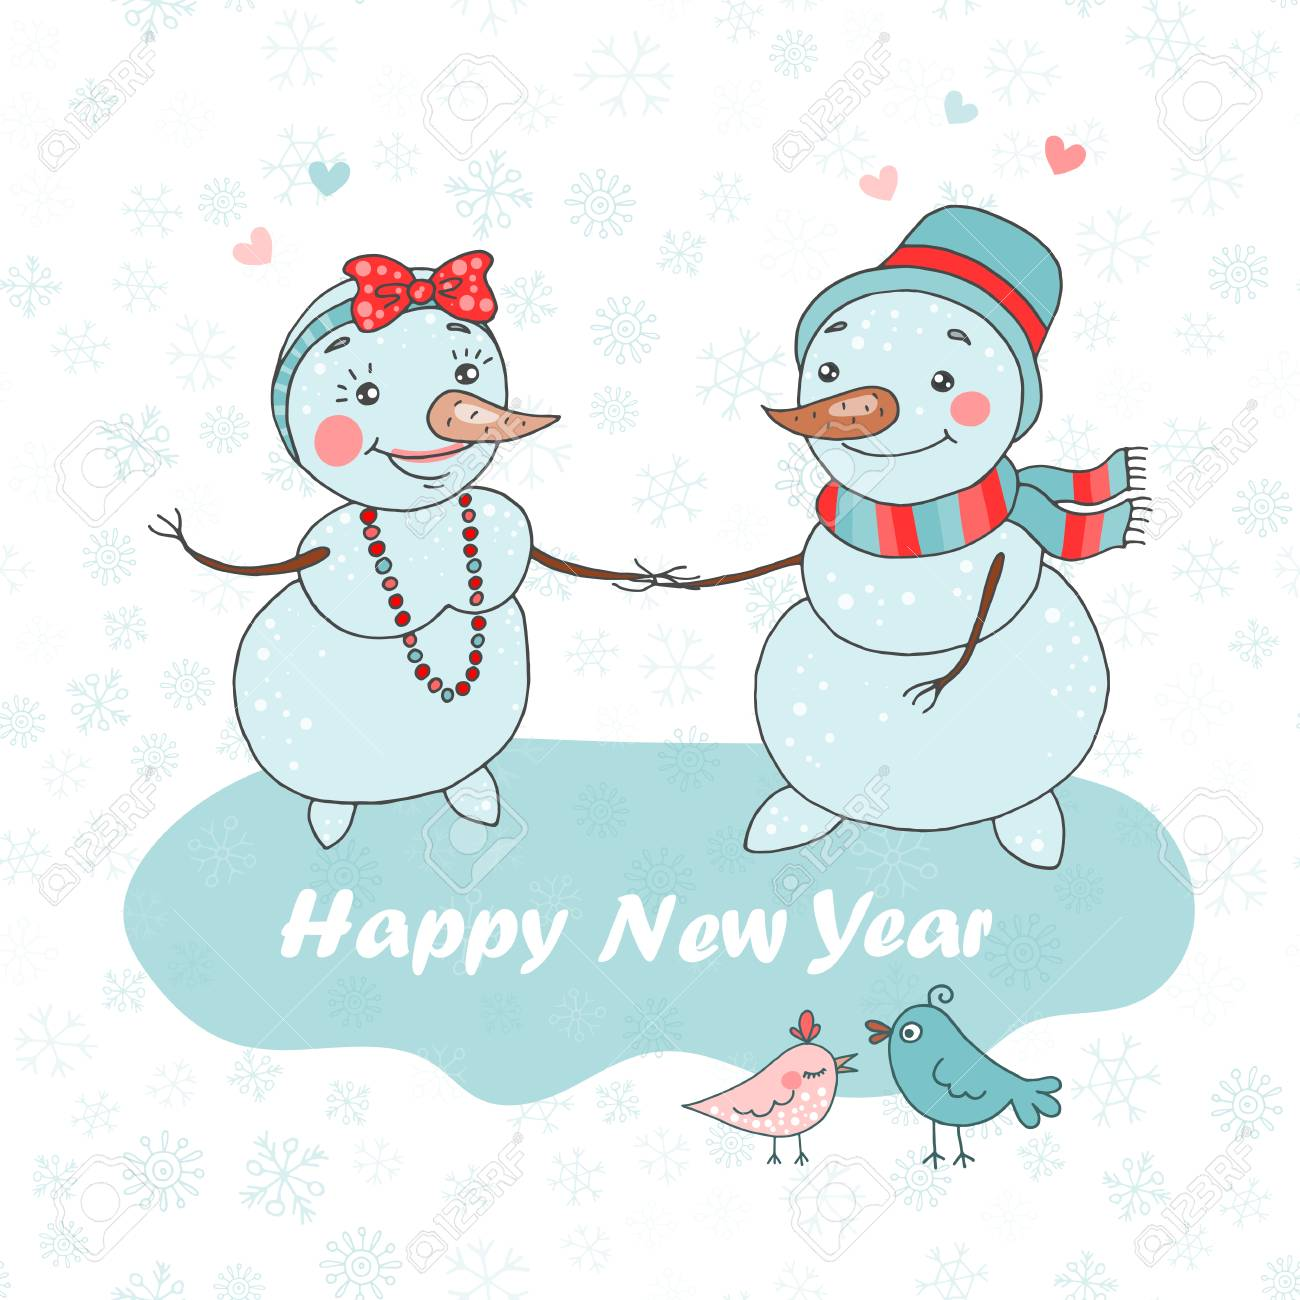 christmas greeting card with cute couple snowman birds and snowflakes stock vector 88321240